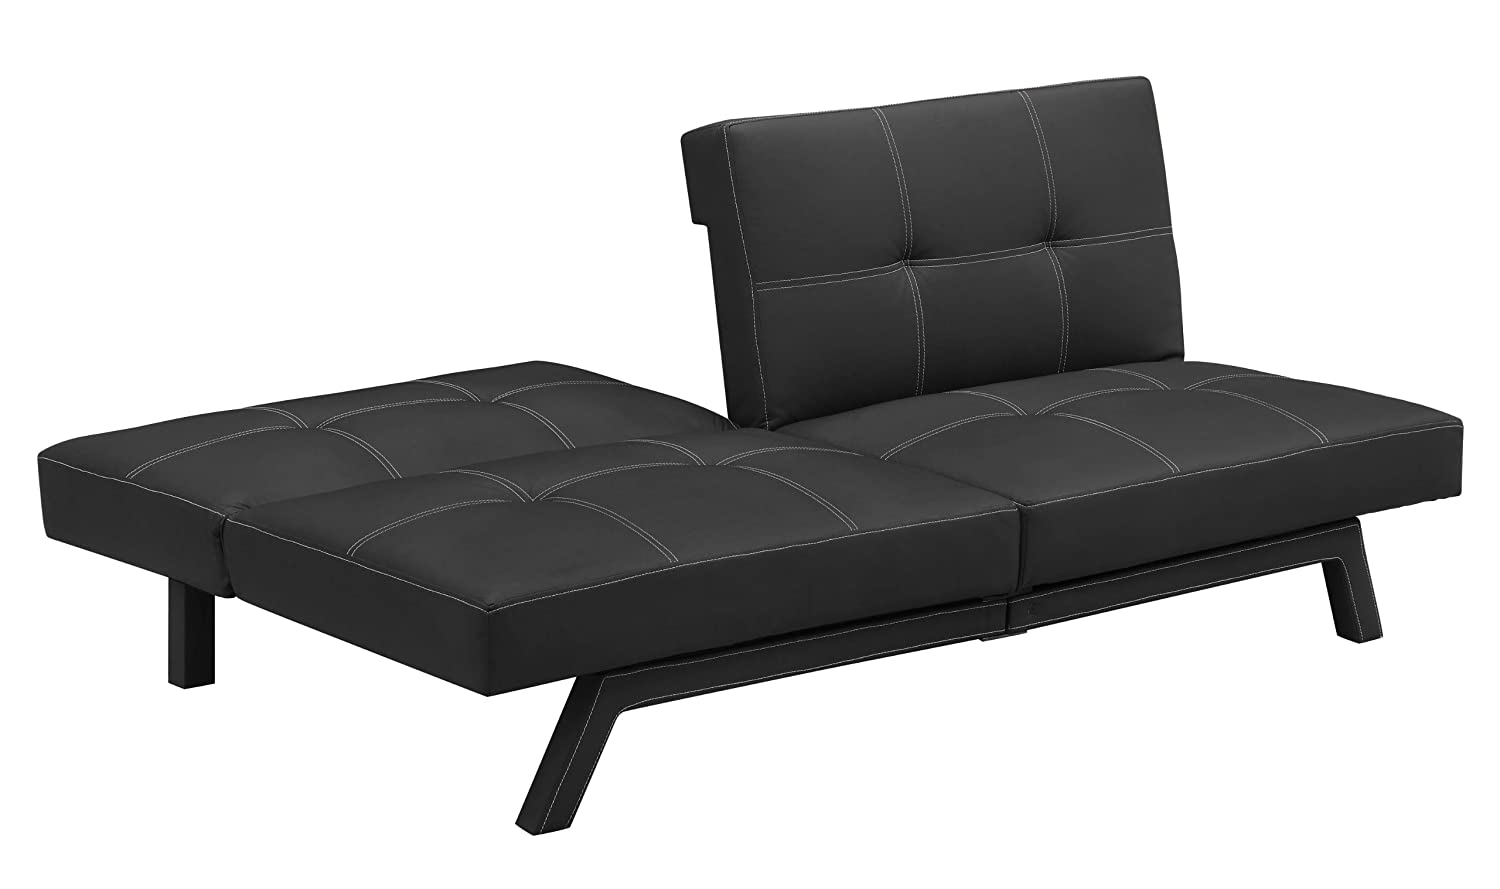 black velvet couch leather sofa sale com sofamania vlv flash blk abel tufted collections futon